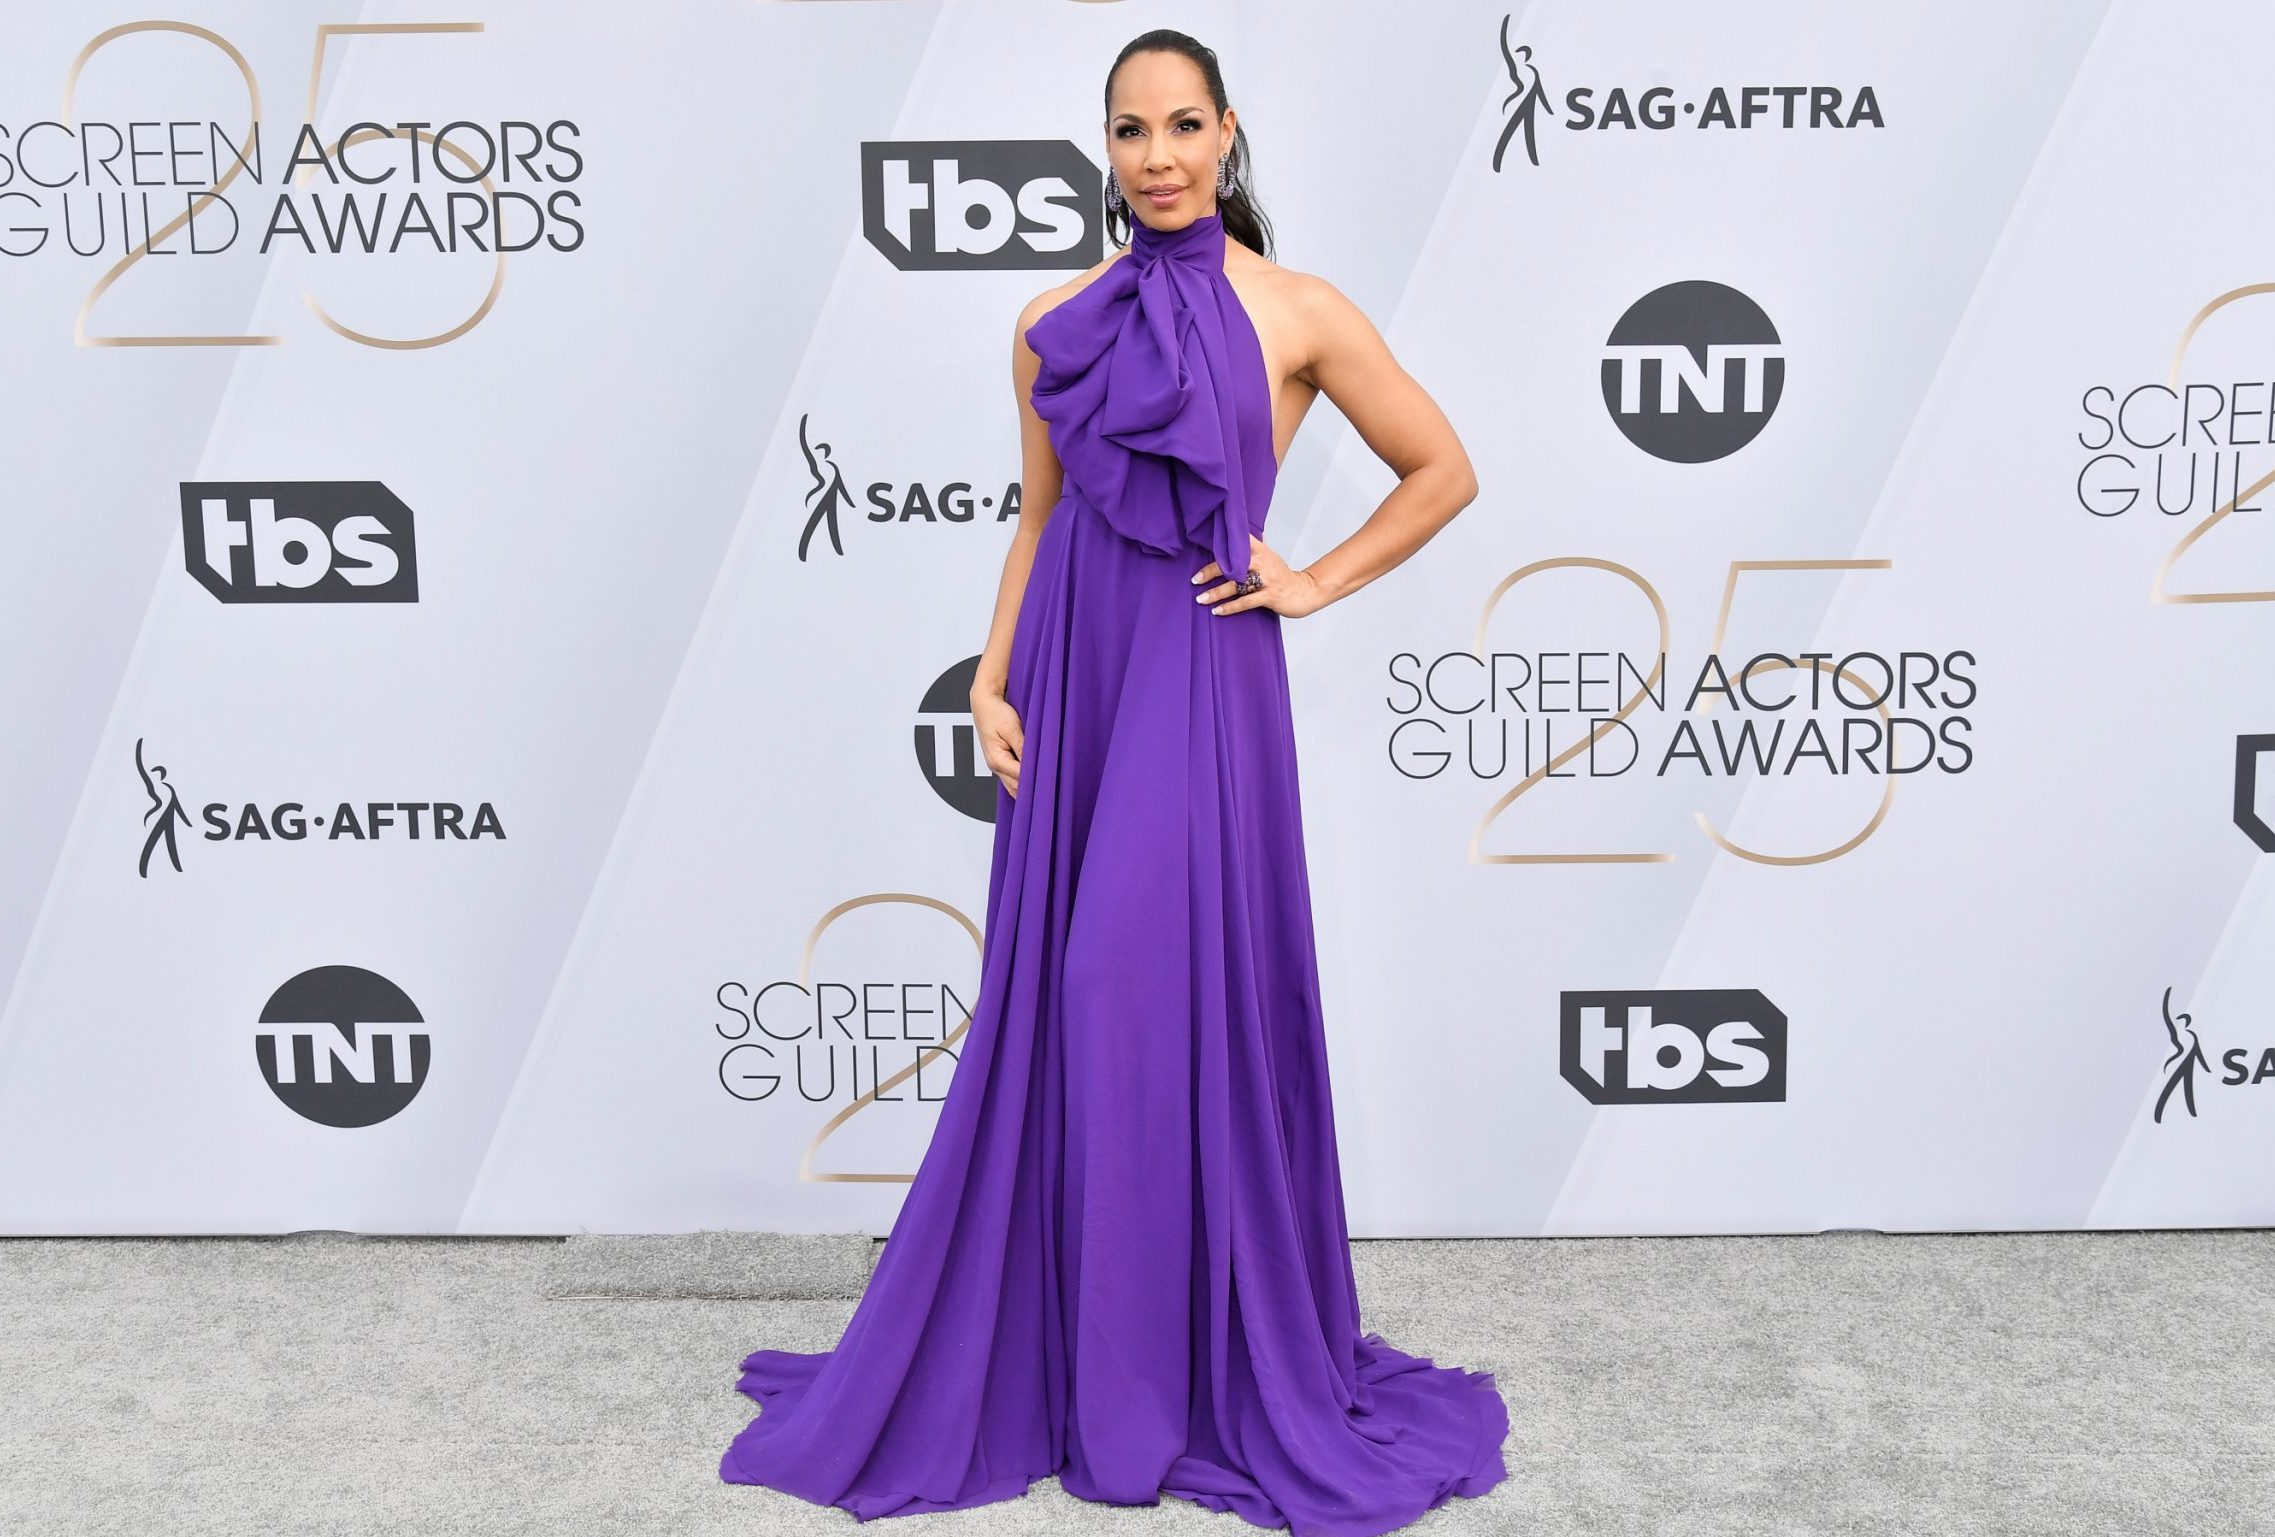 Screen Actors Guild Awards 2019: Amanda Brugel admits The Handmaid's Tale season three will be 'crazier' and we're not ready for it